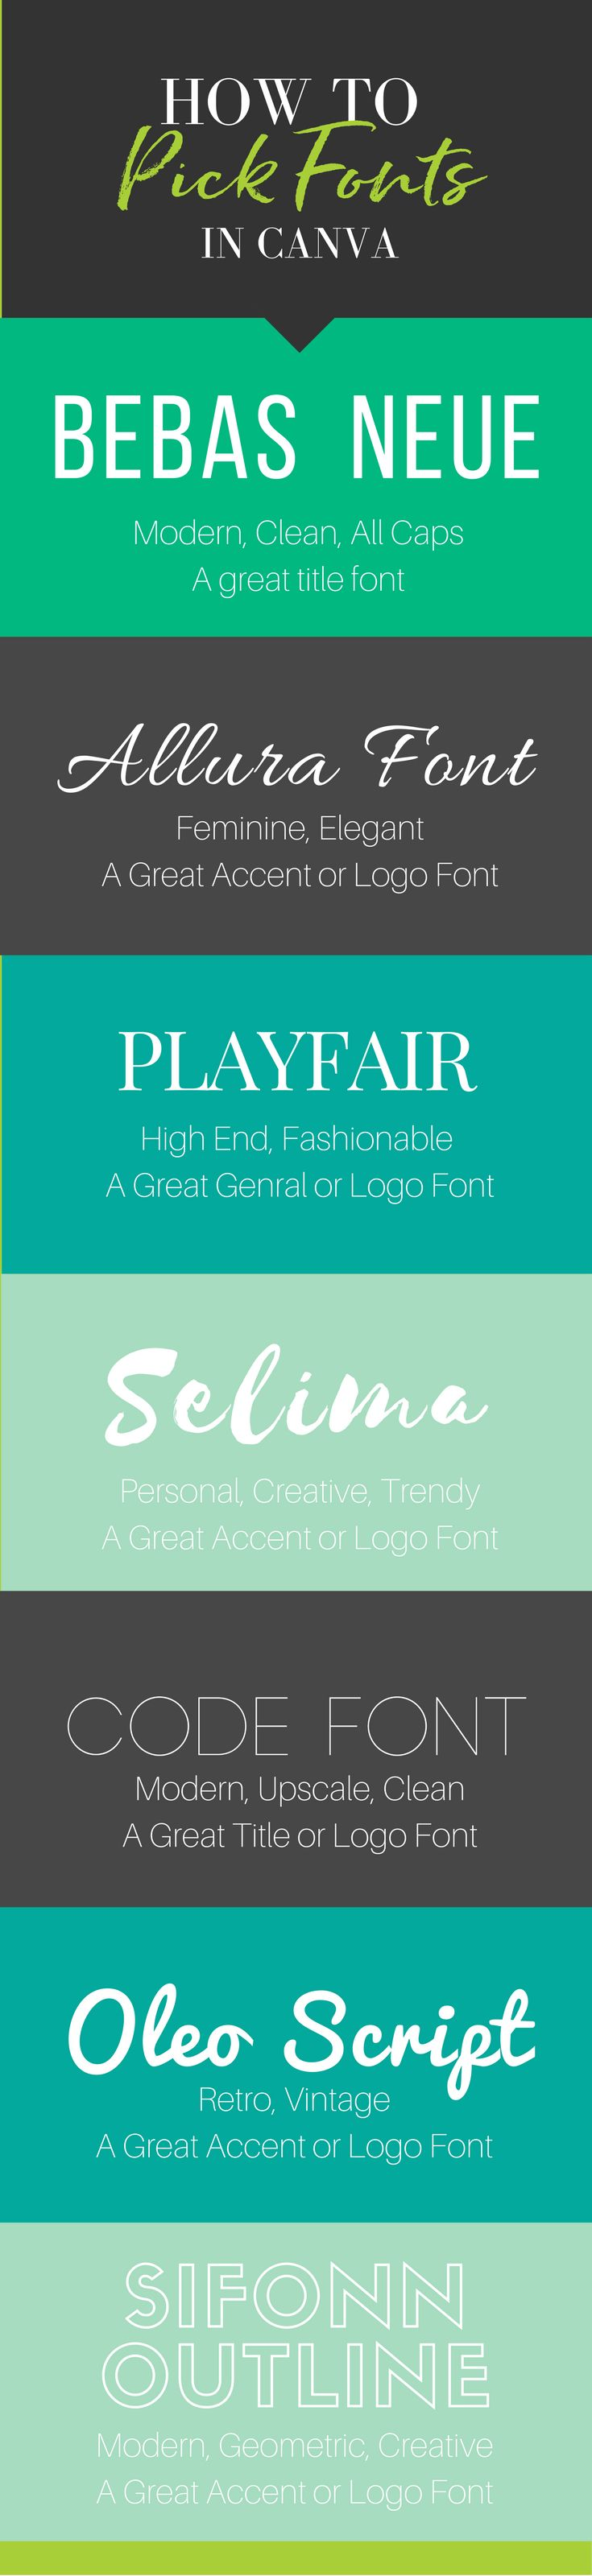 Choosing Fonts For Your Brand In Canva   Kate Danielle chats about all the creative ways you can design elegant and stylish fonts for your branding with Canva.    online business, graphic design, pinterest pins, pin designs, canva fonts, canva designs, font themes, font branding styles. via @katedanielle